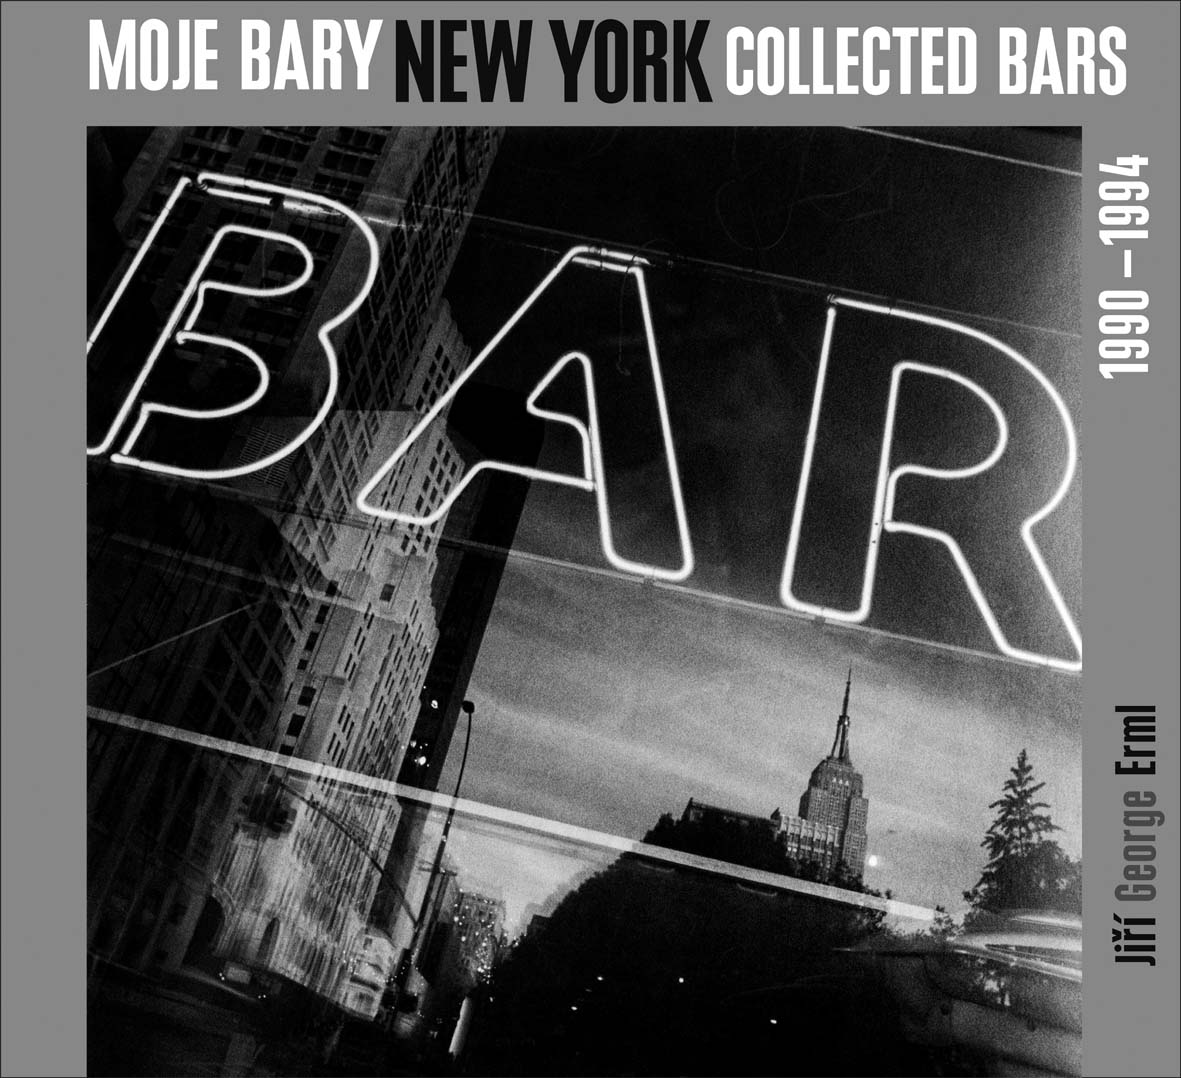 Collected Bars NEW YORK Moje bary